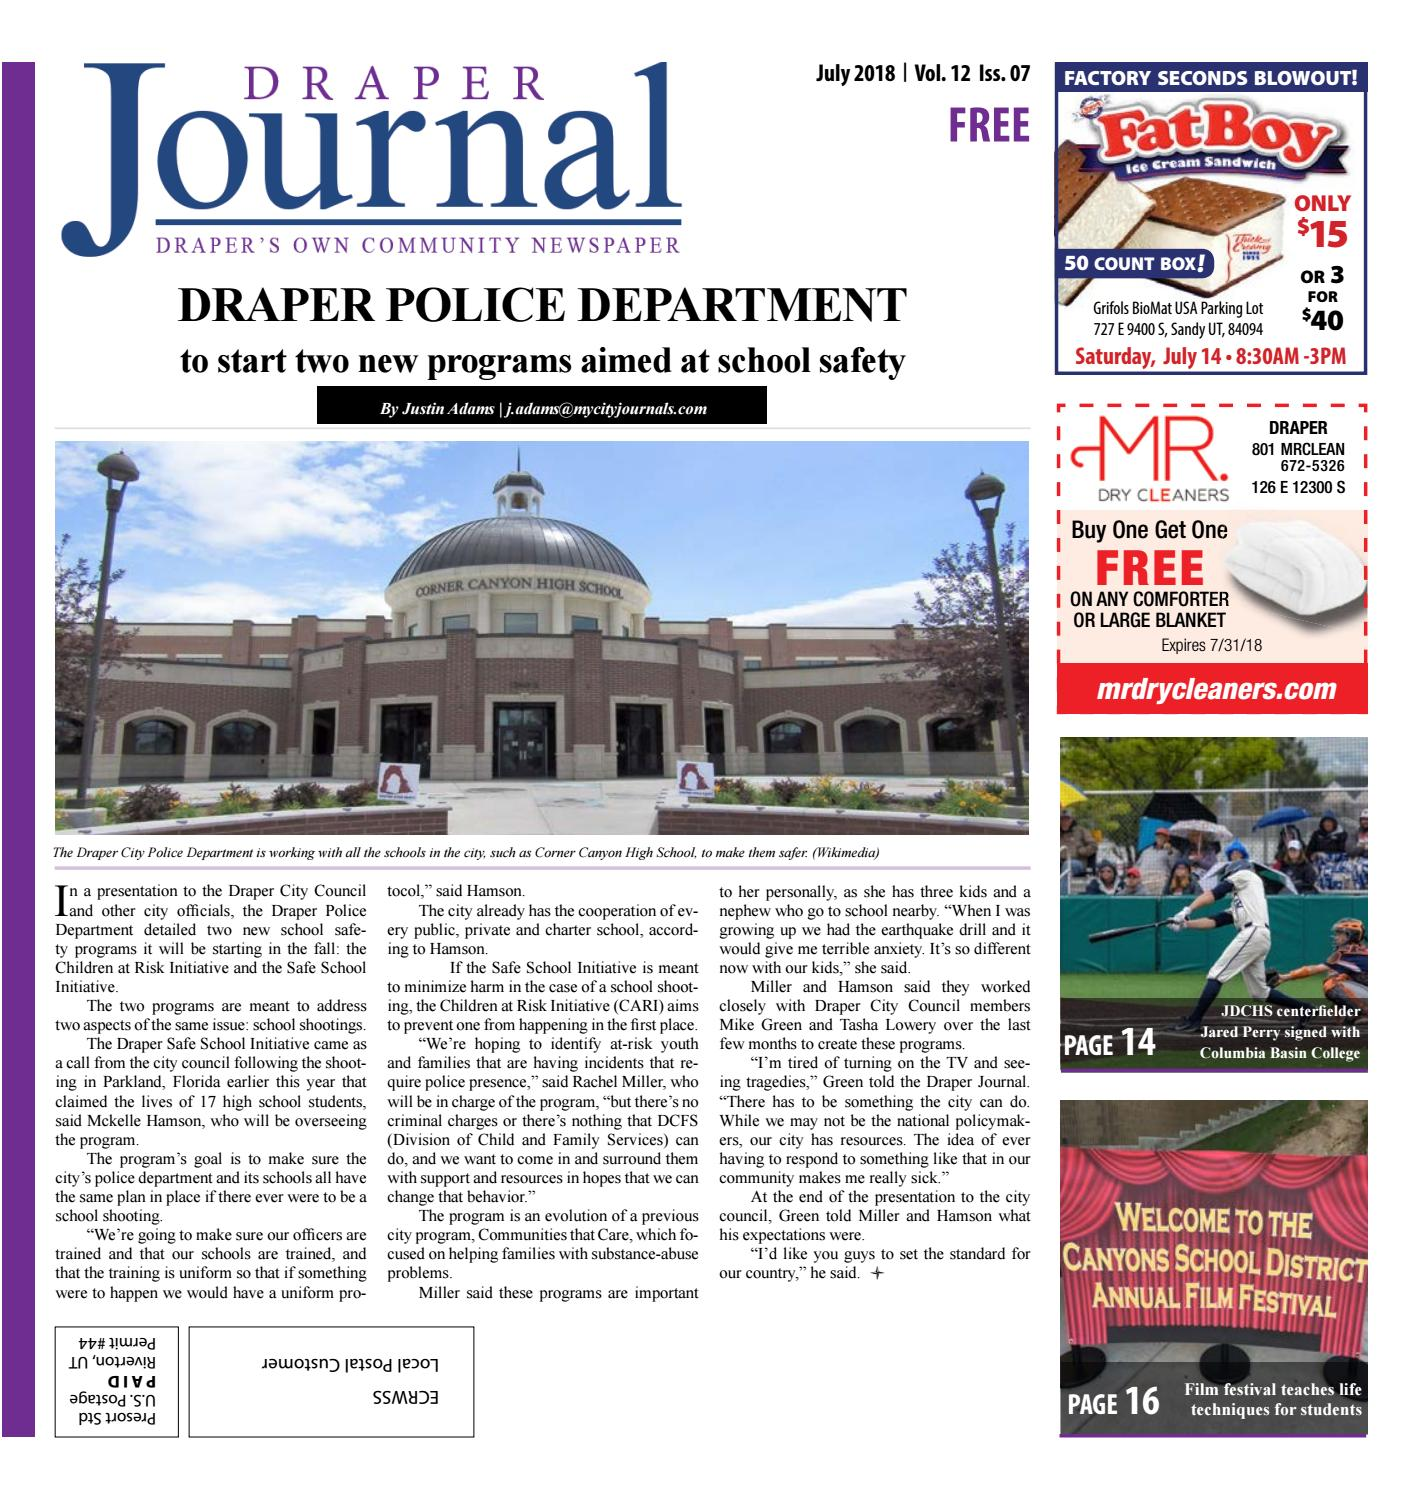 Draper City Journal July 2018 by The City Journals - issuu